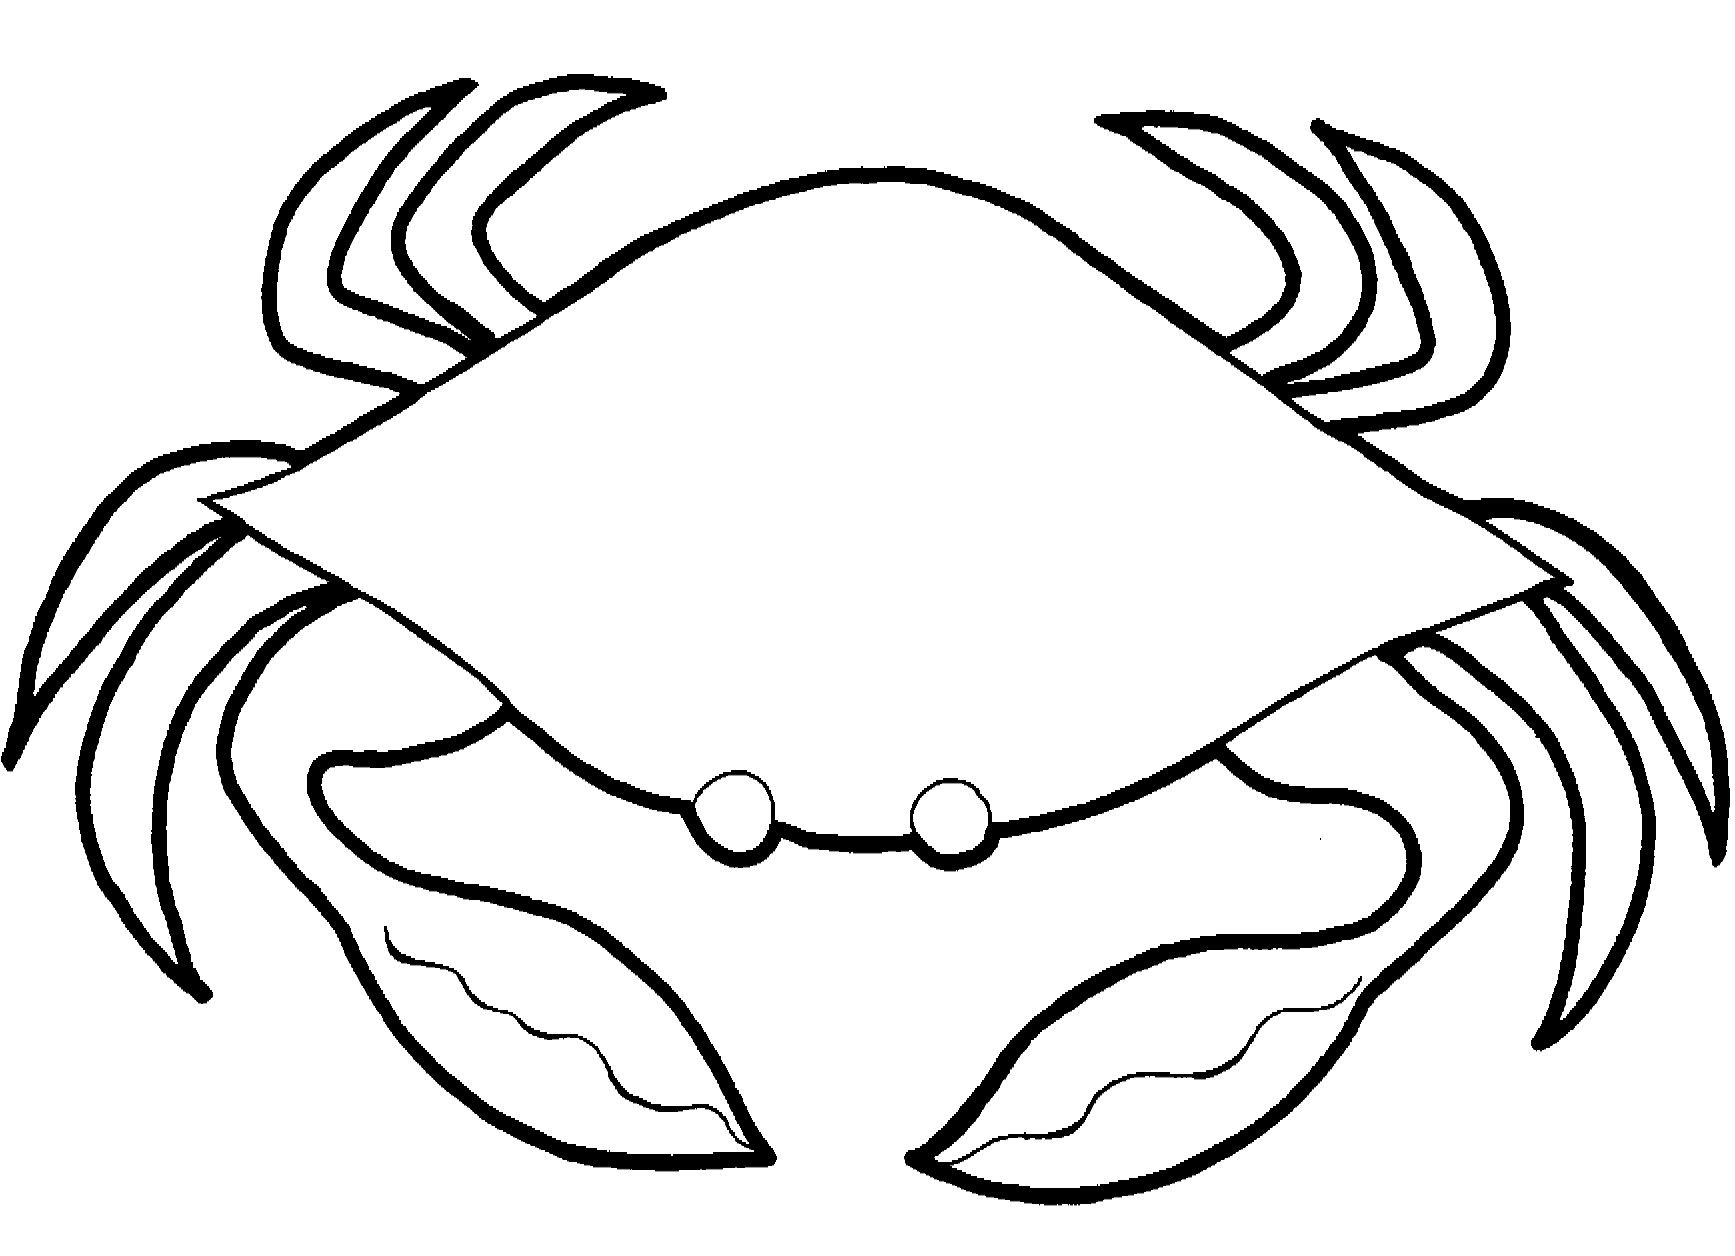 crab coloring pages free printable coloring pages simple c - Simple Color Pages